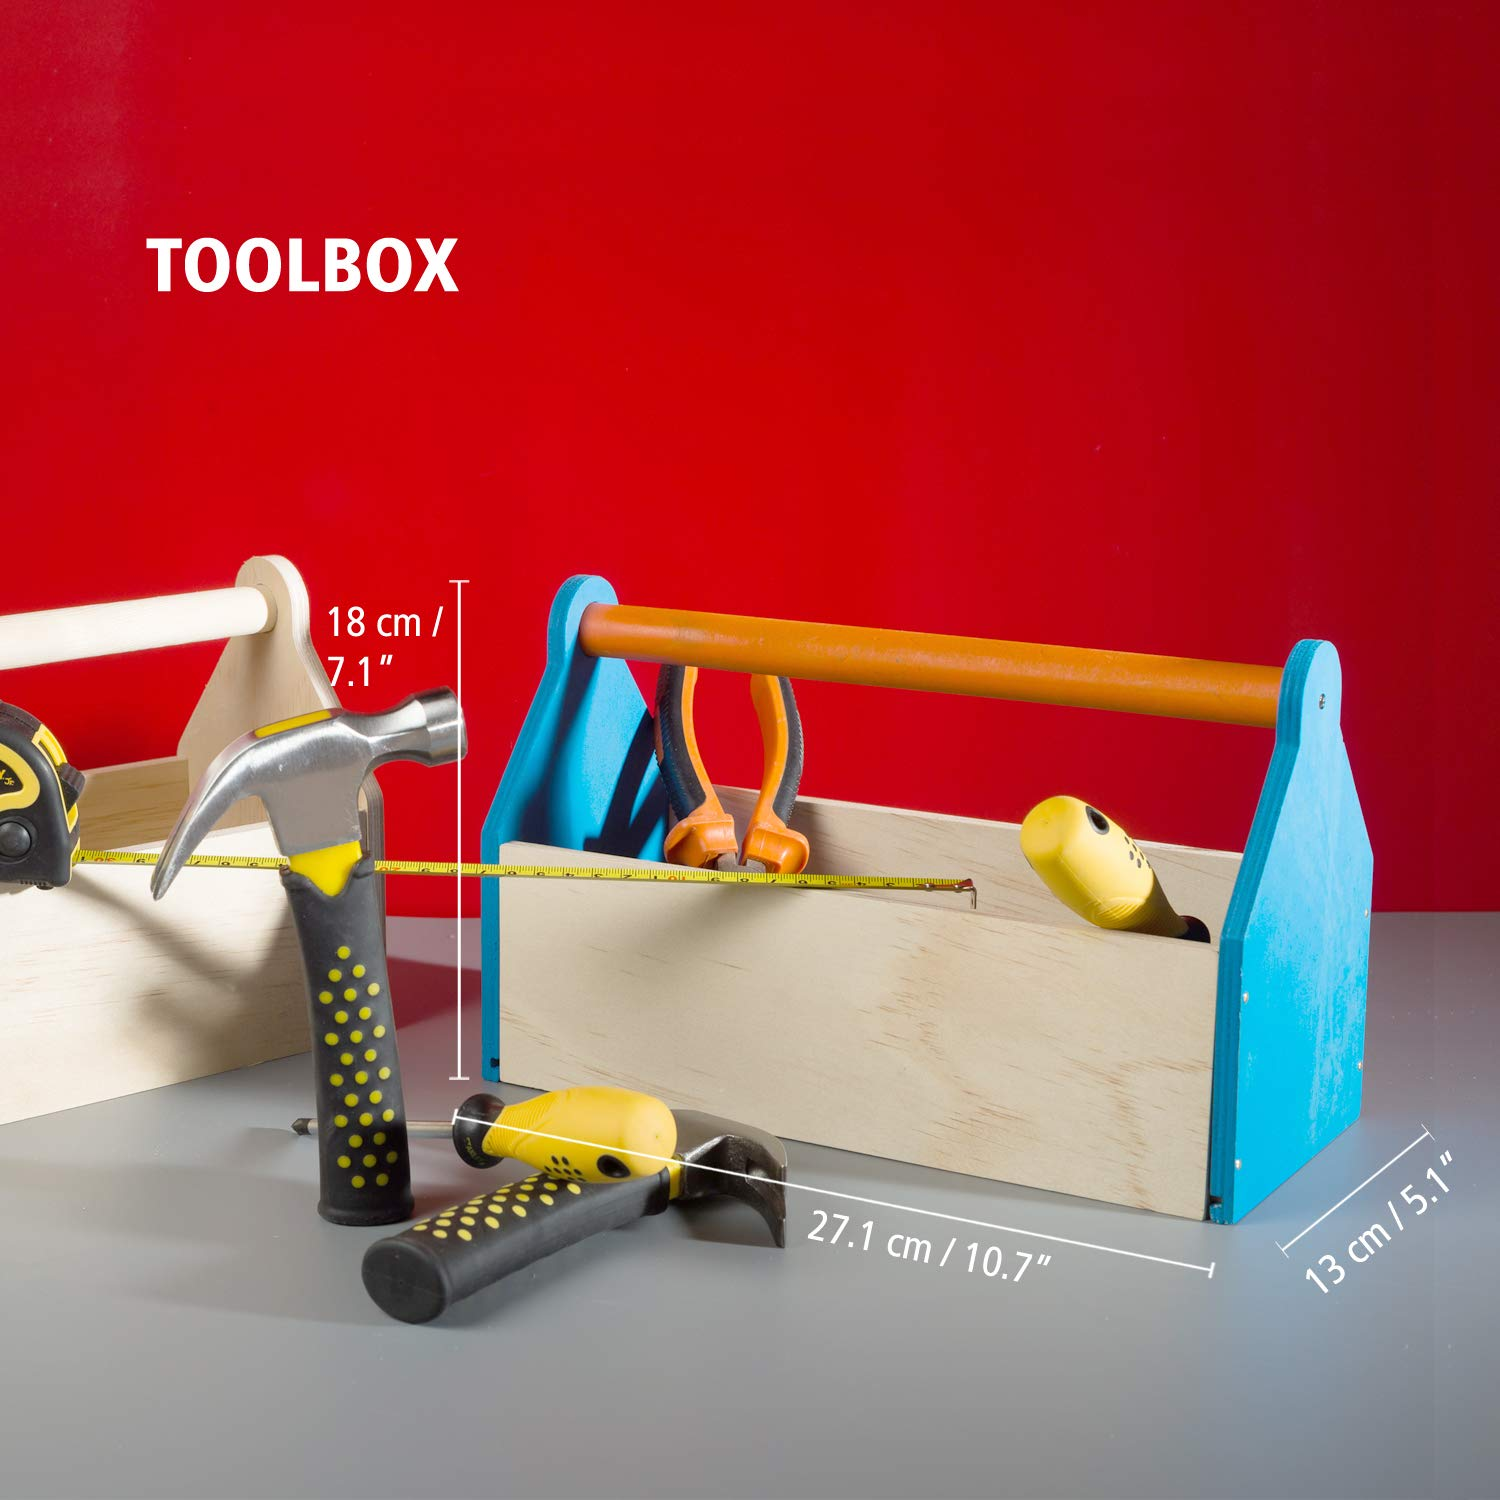 Stanley Jr DIY Toolbox Kit for Kids - Easy to Assemble Wood Craft Toolbox - Build A Tool Box for Kids - Paint & Brushes Included by Stanley Jr (Image #7)